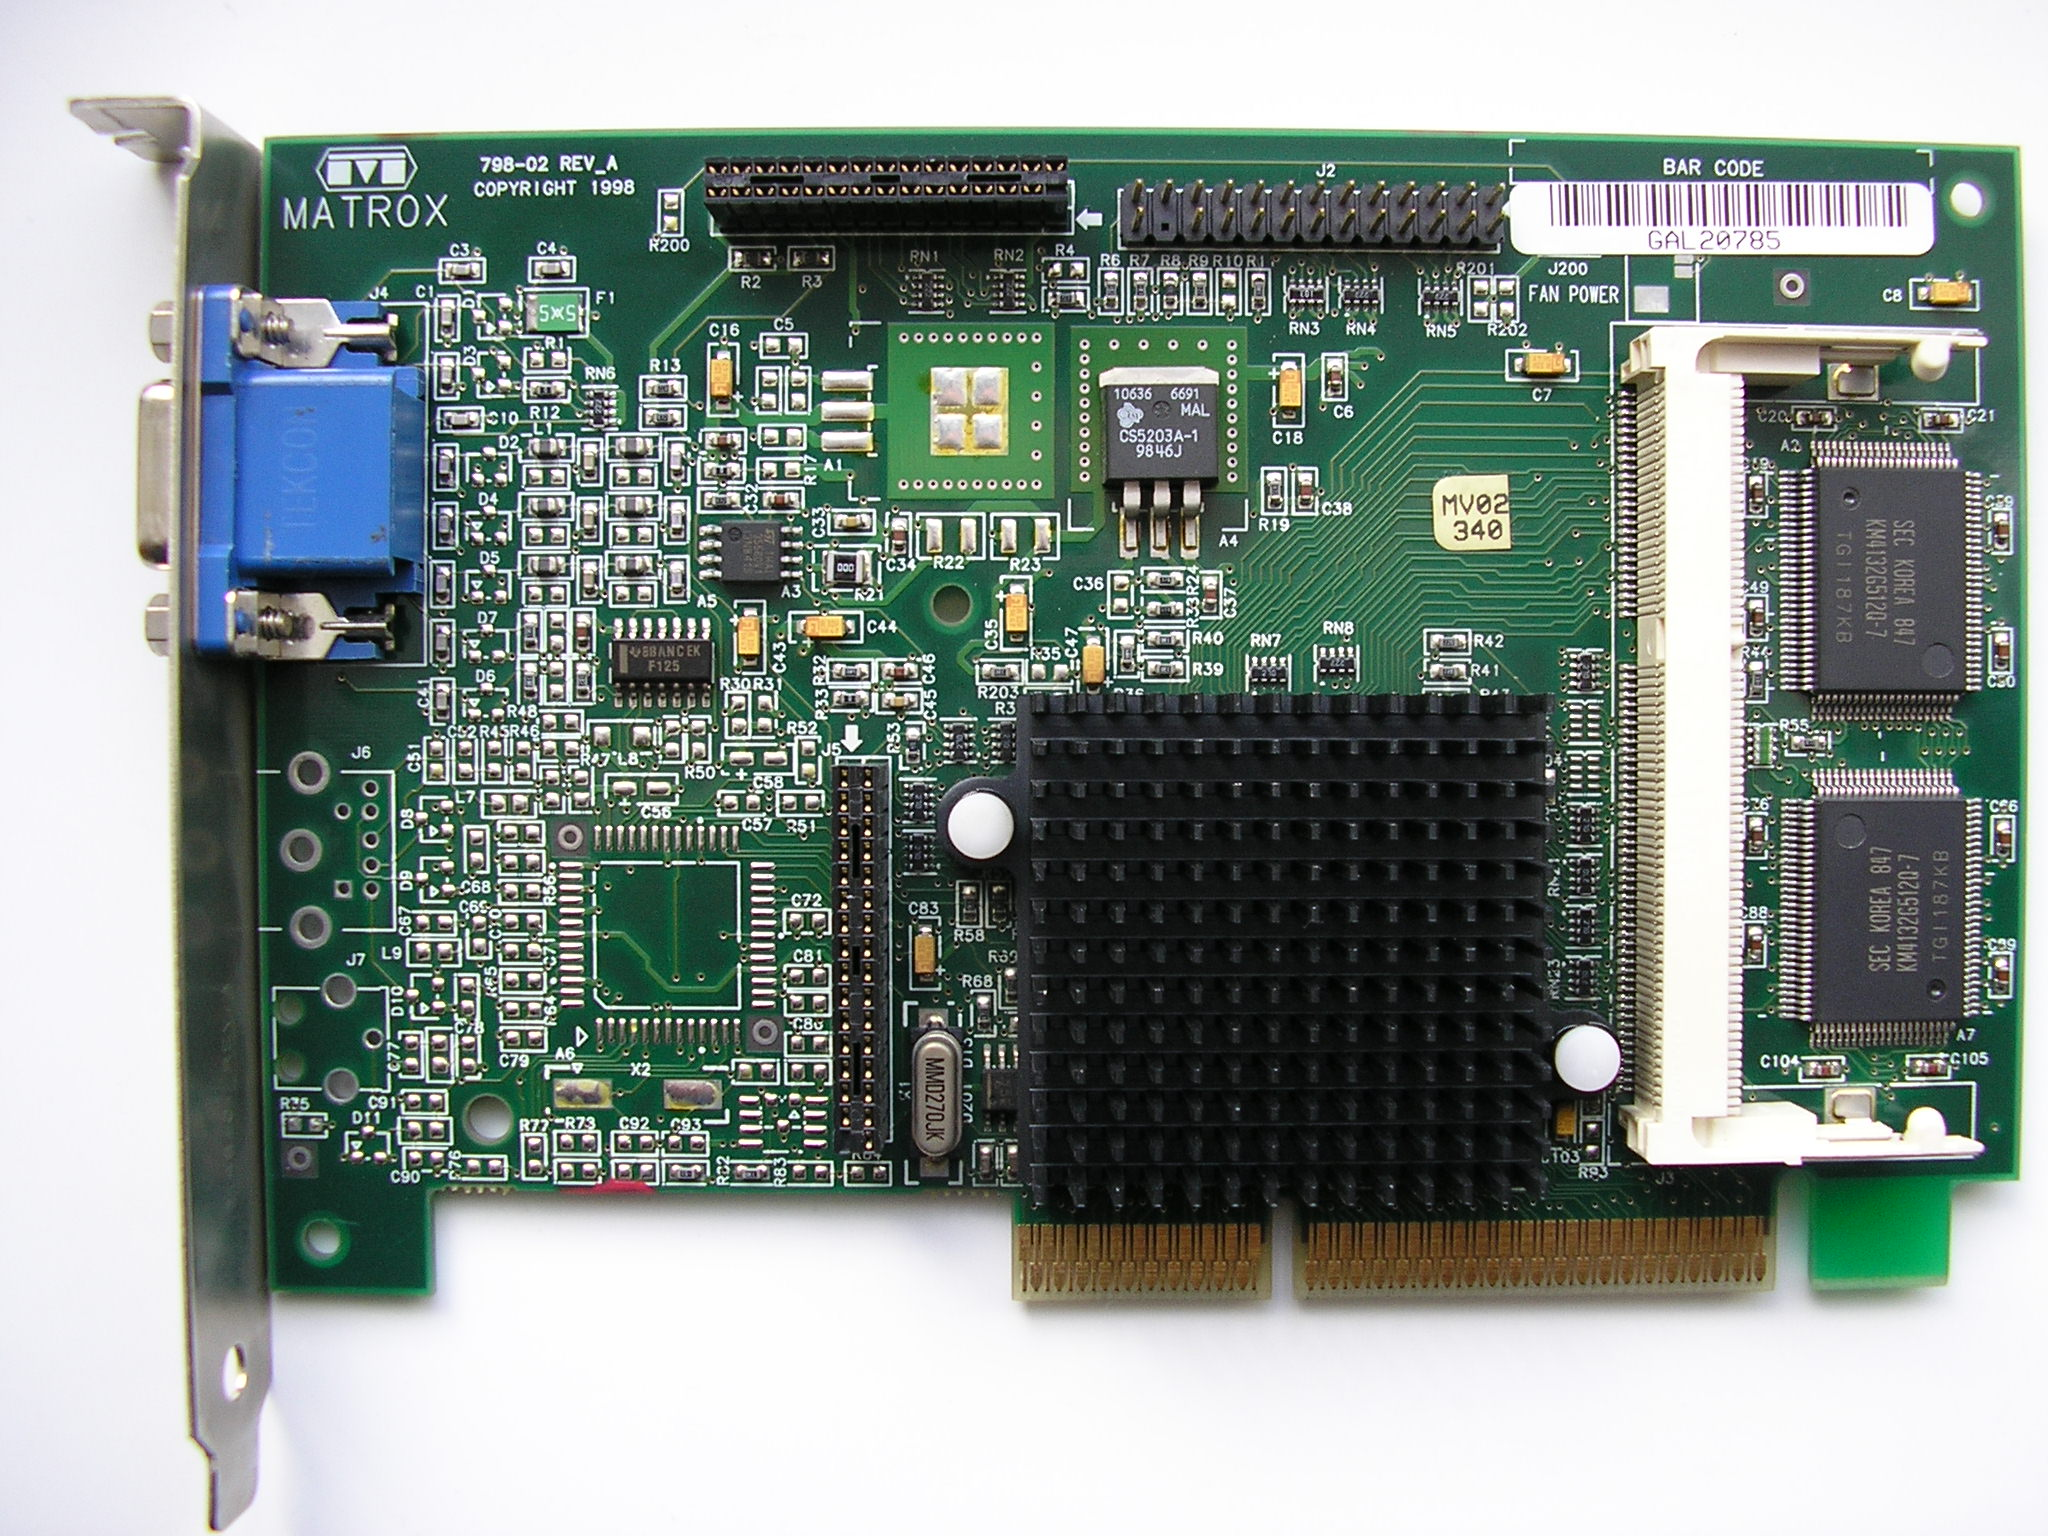 MATROX MGA G200A 02 WINDOWS 8 DRIVER DOWNLOAD